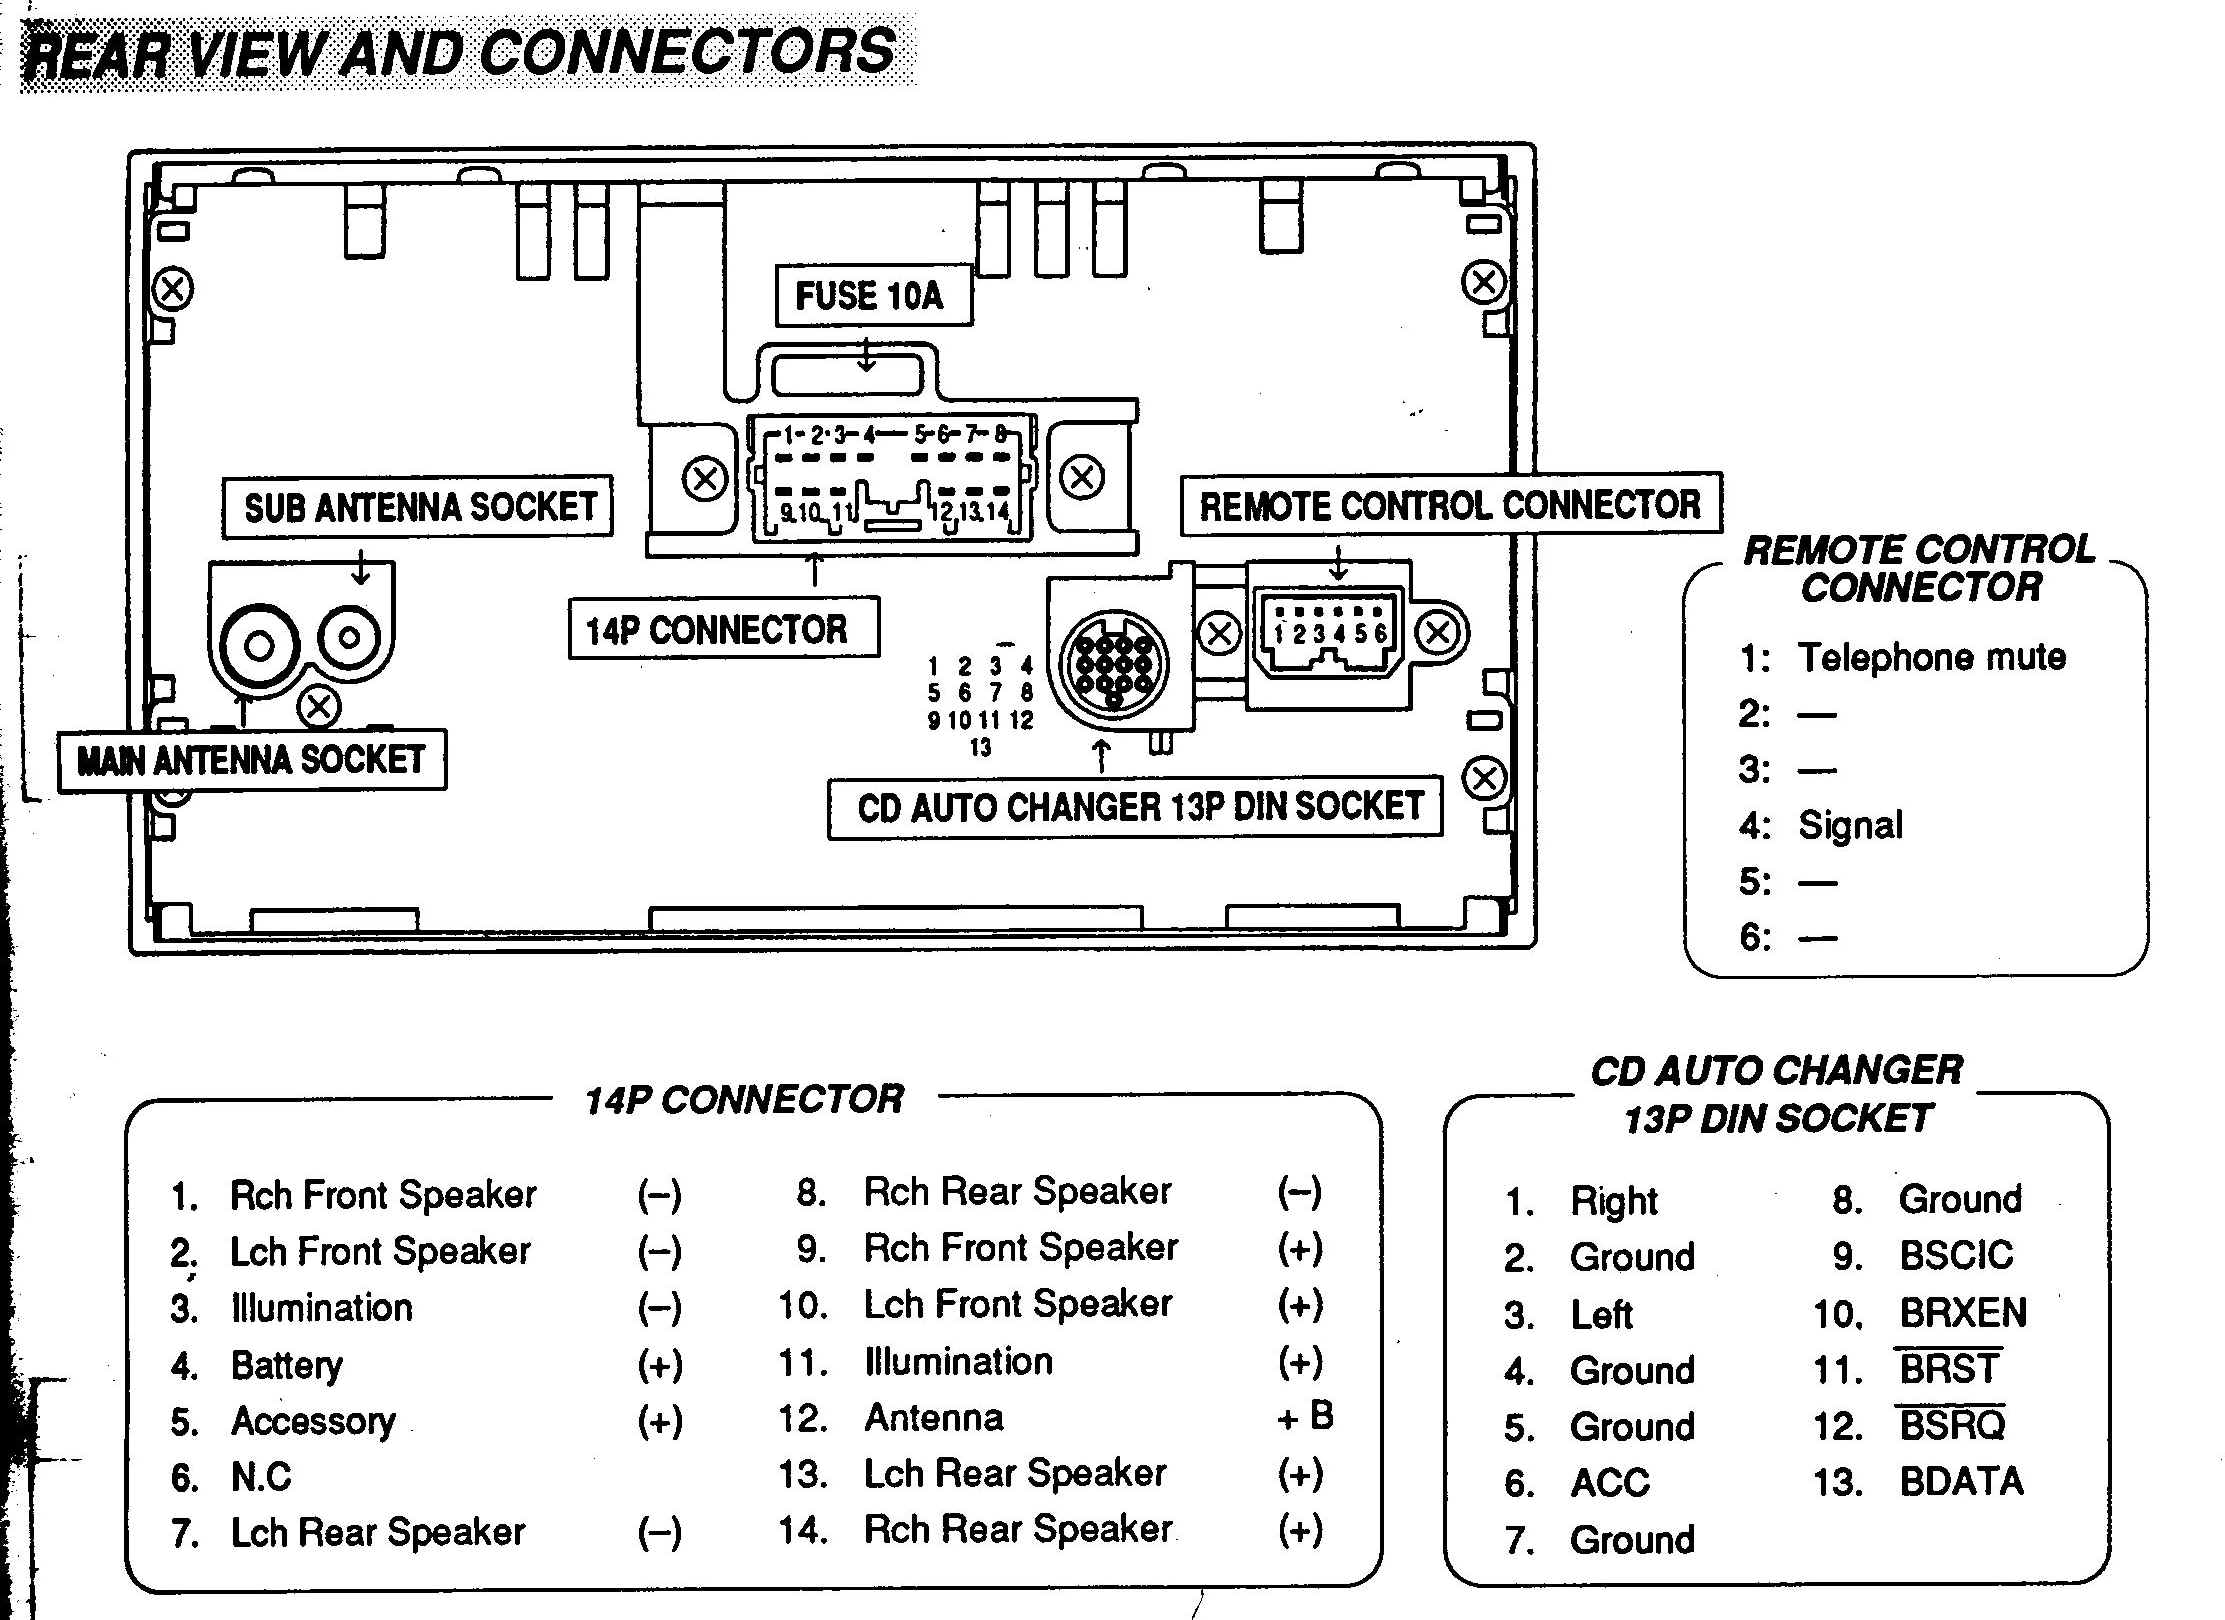 WireHarnessMit121003 car audio wire diagram codes mitsubishi factory car stereo 2003 mitsubishi eclipse amp wiring diagram at crackthecode.co